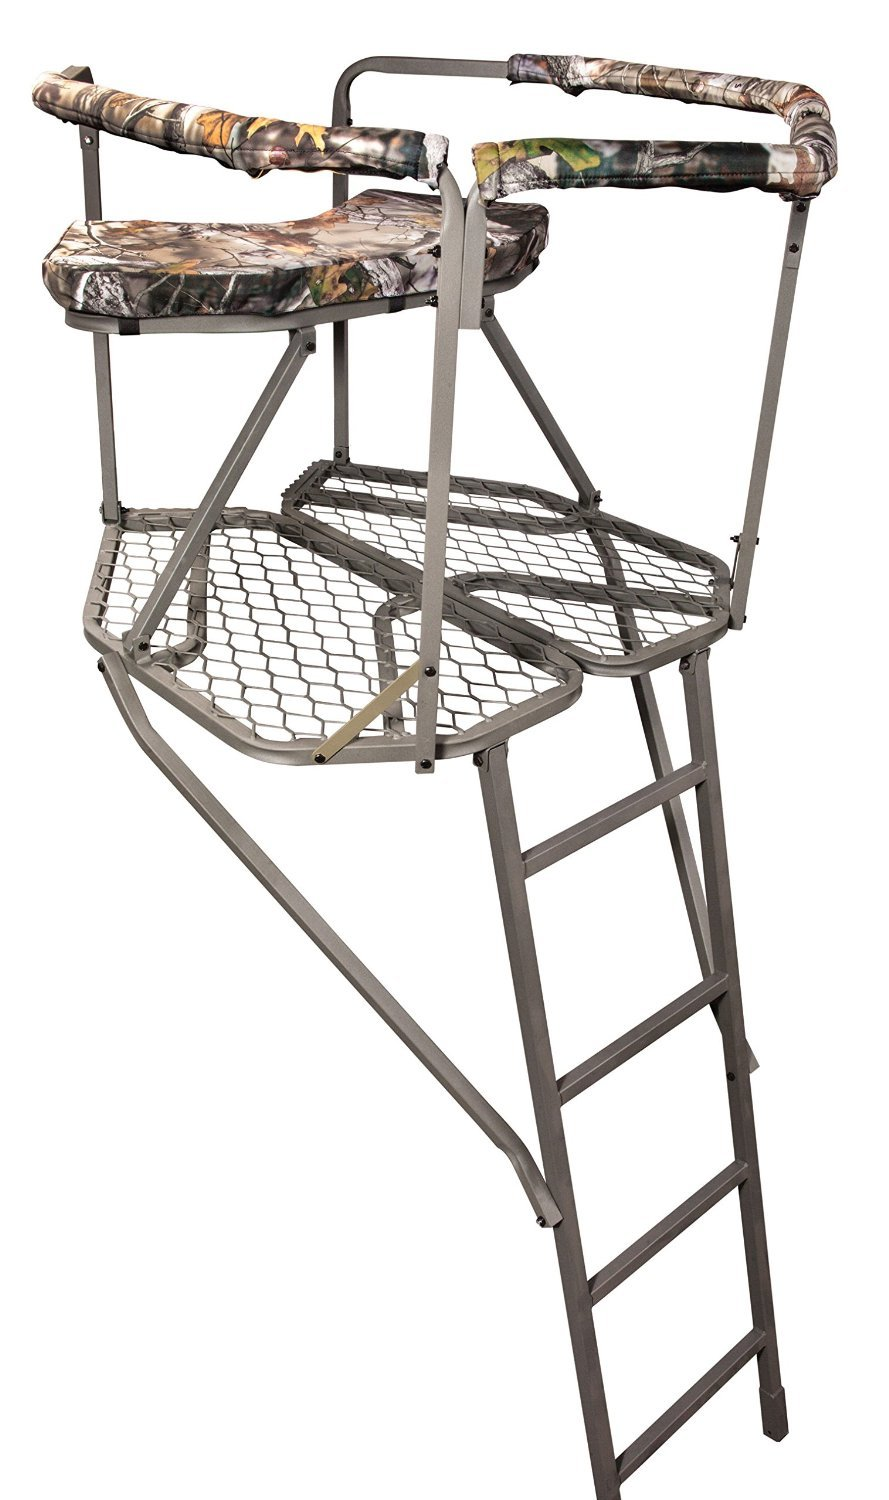 Summit Outlook 1-Man Multi-Directional Ladder Stand Treestand 82083